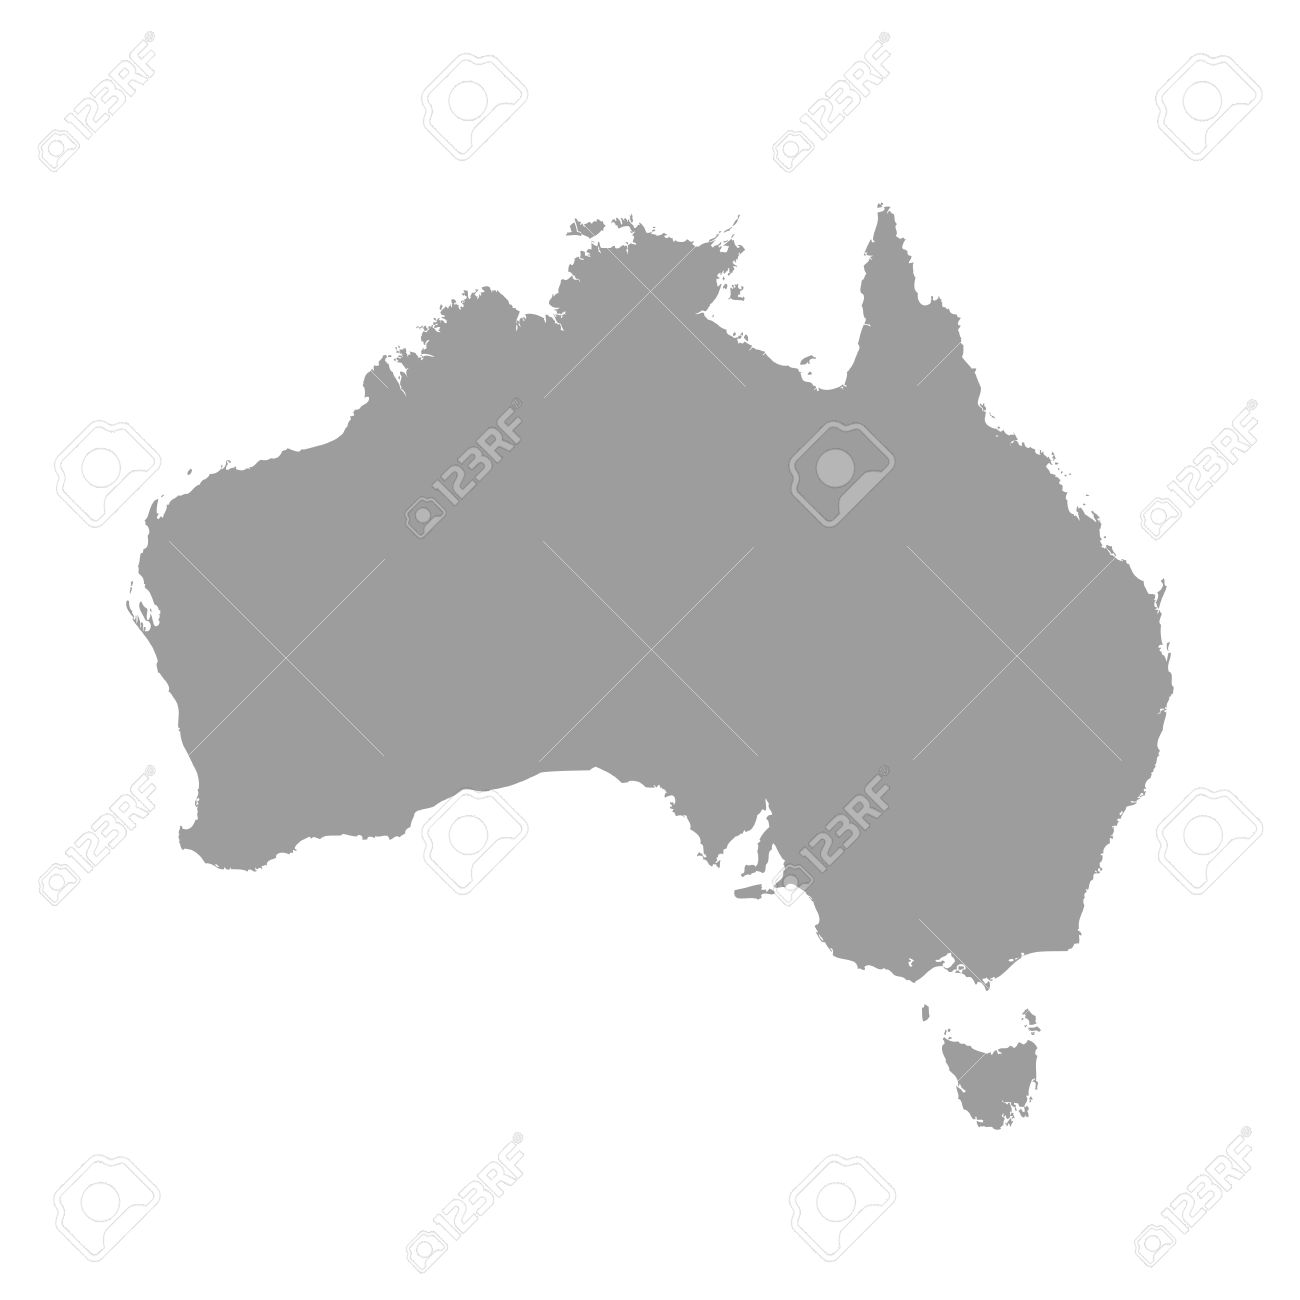 Australia map grey colored on a white background royalty free australia map grey colored on a white background stock vector 49549406 gumiabroncs Choice Image